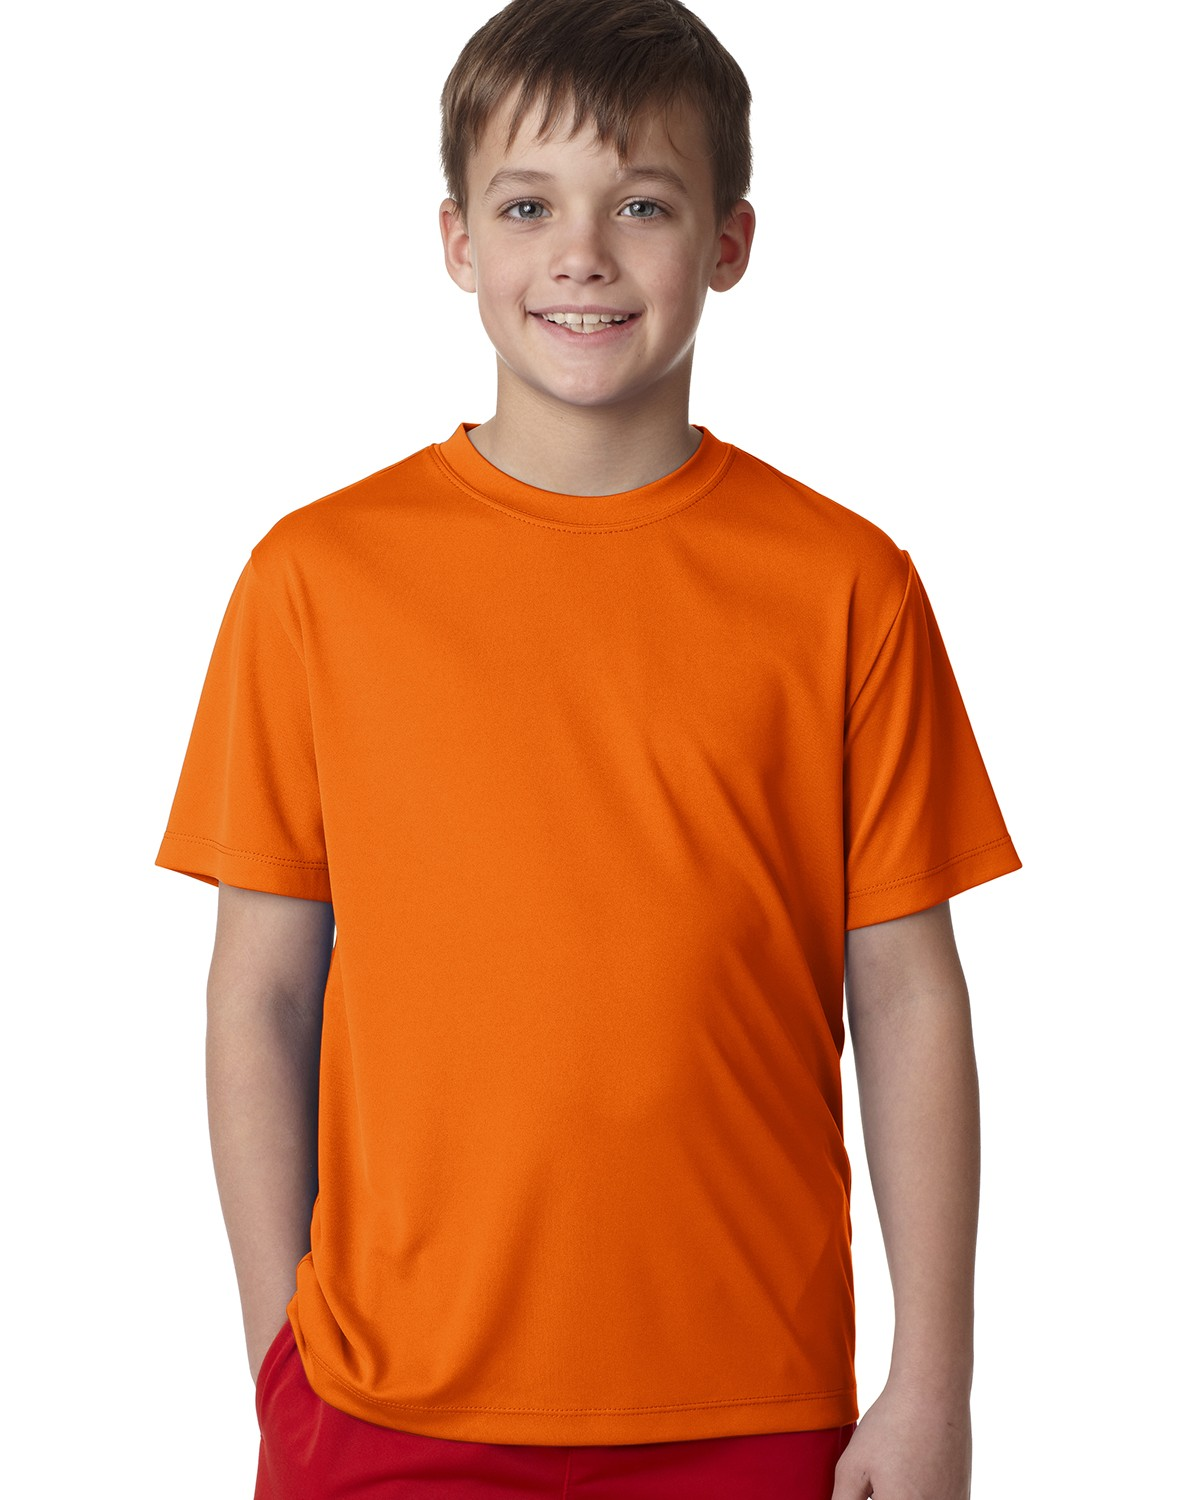 482Y Hanes SAFETY ORANGE